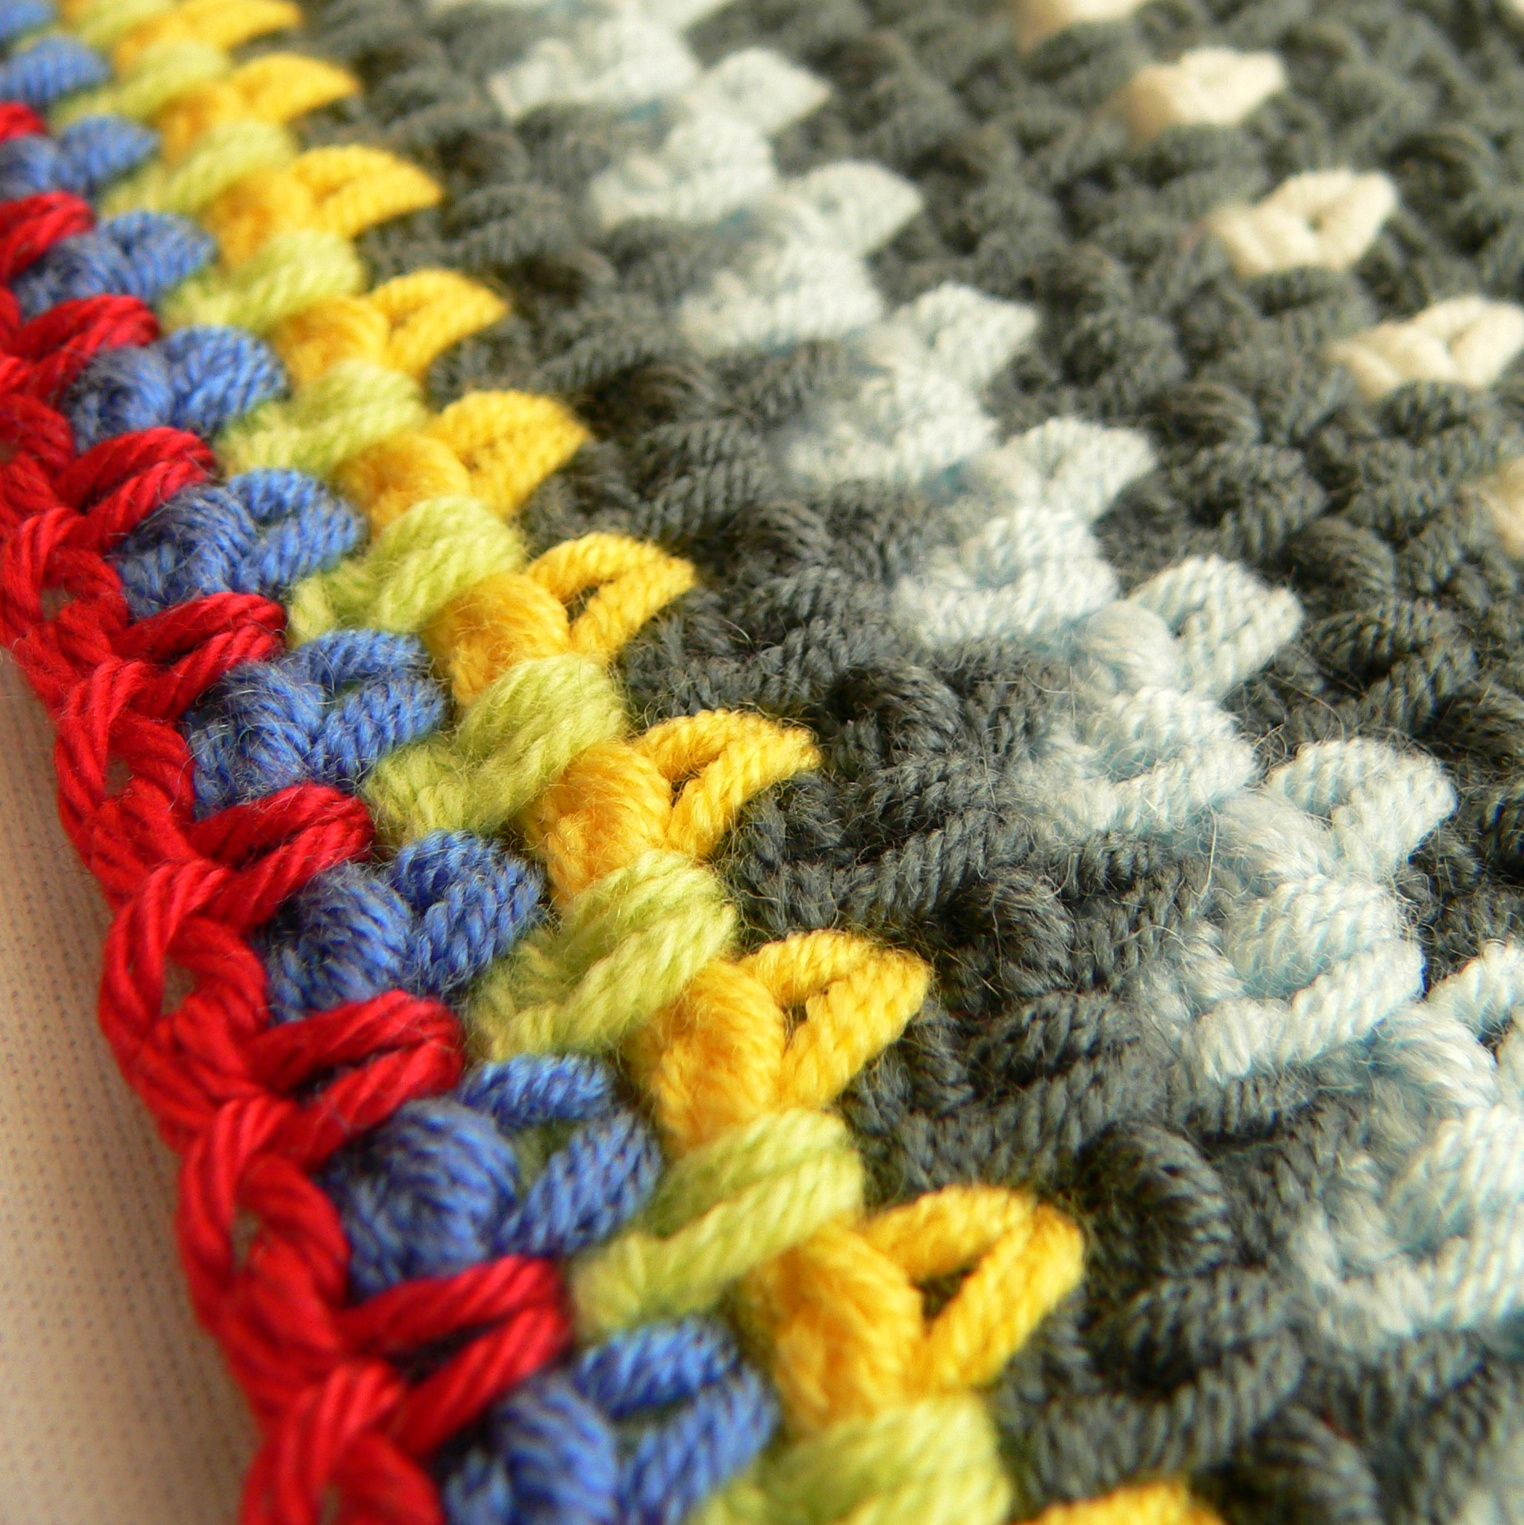 Crochet Basics How To Turn Your Work And Fasten Off All Shawl Stitch Diagrams Doris Chan Add These 5 Different Stitches Repertoire